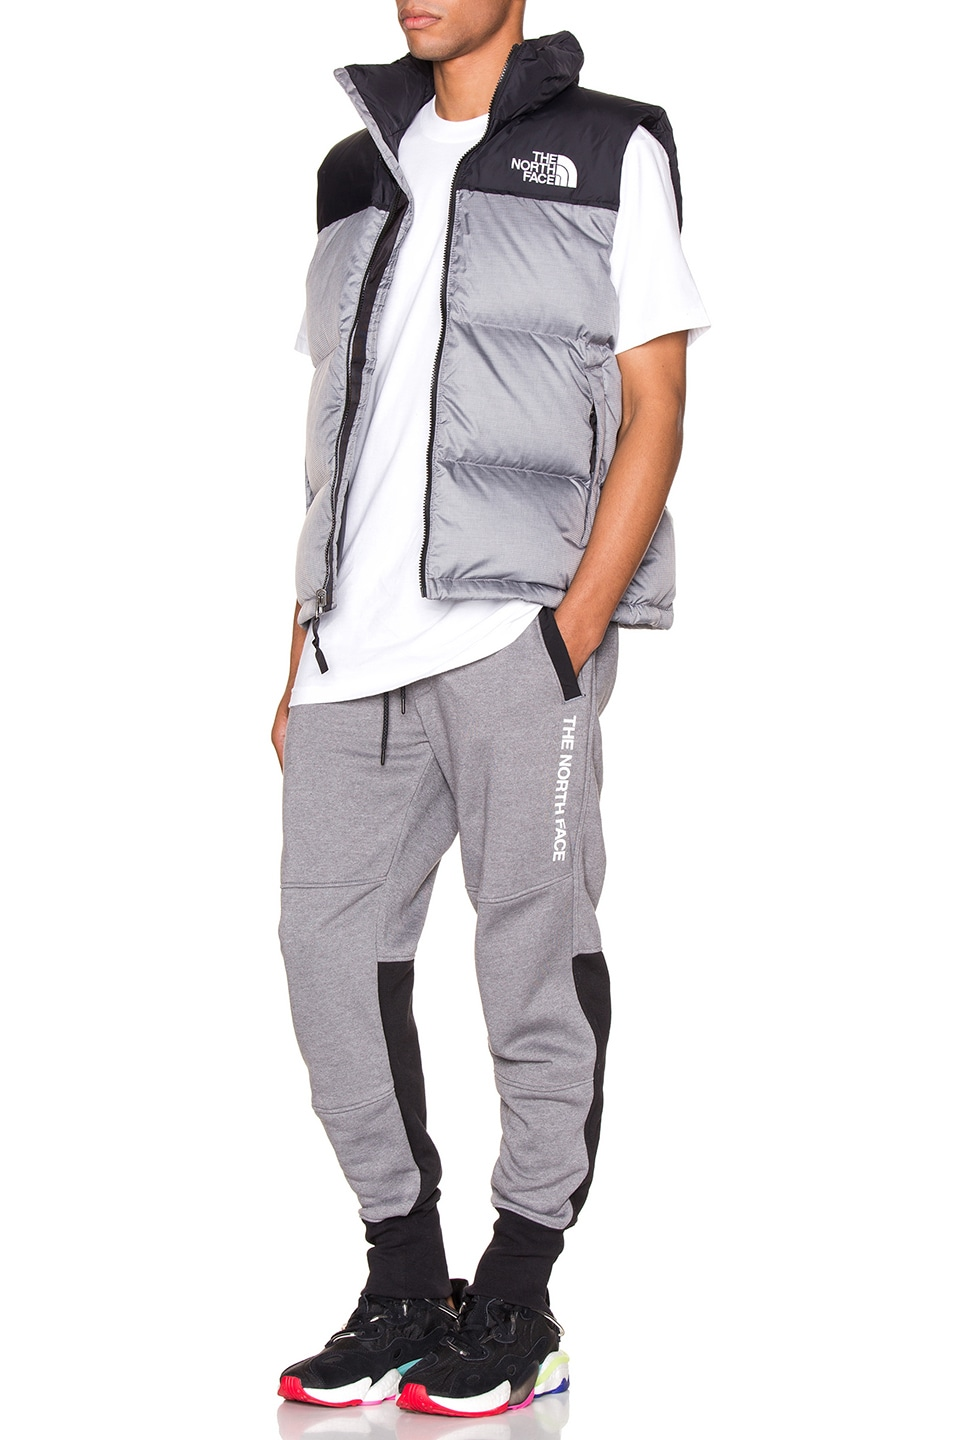 Image 5 of The North Face NSE Graphic Pant in TNF Medium Grey Heather